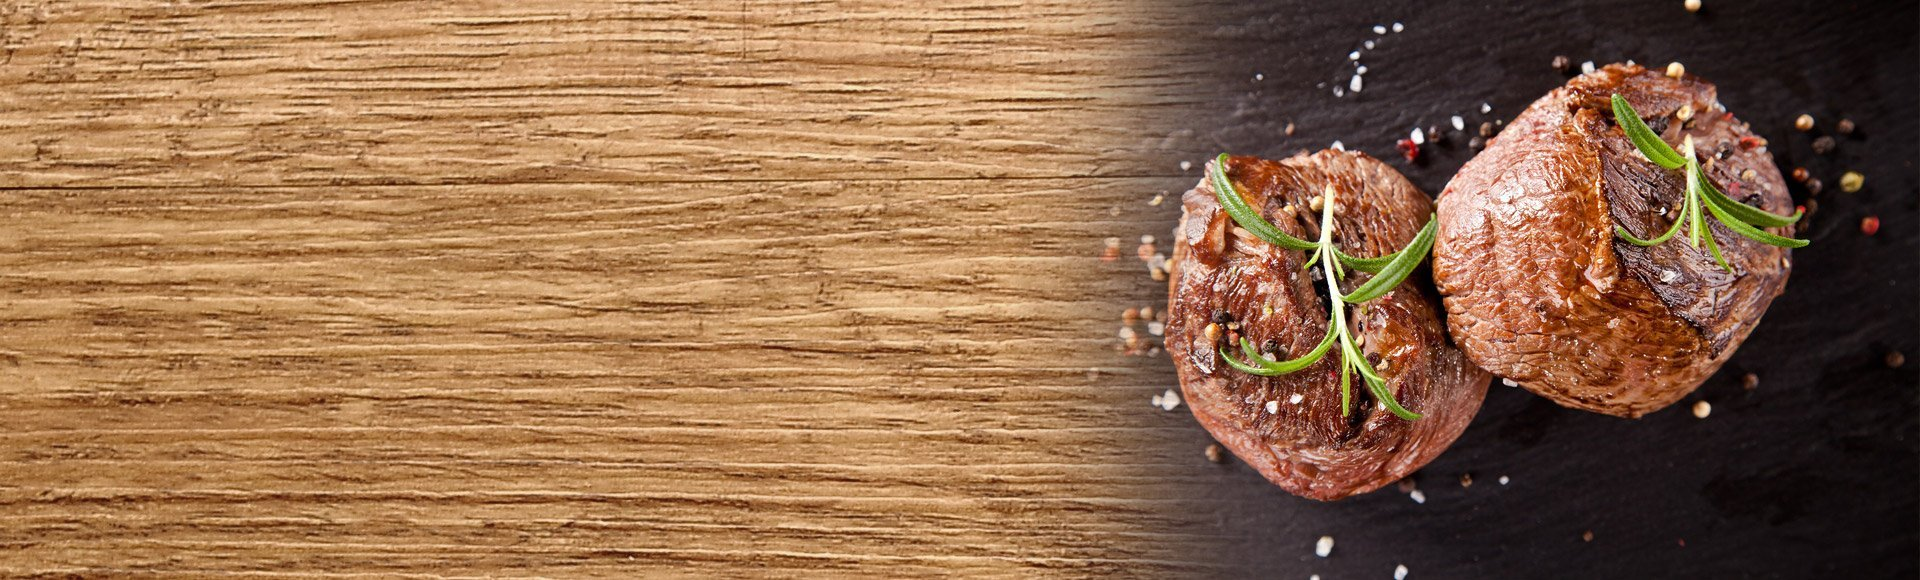 2 juicy bison medallions on a black background with spices